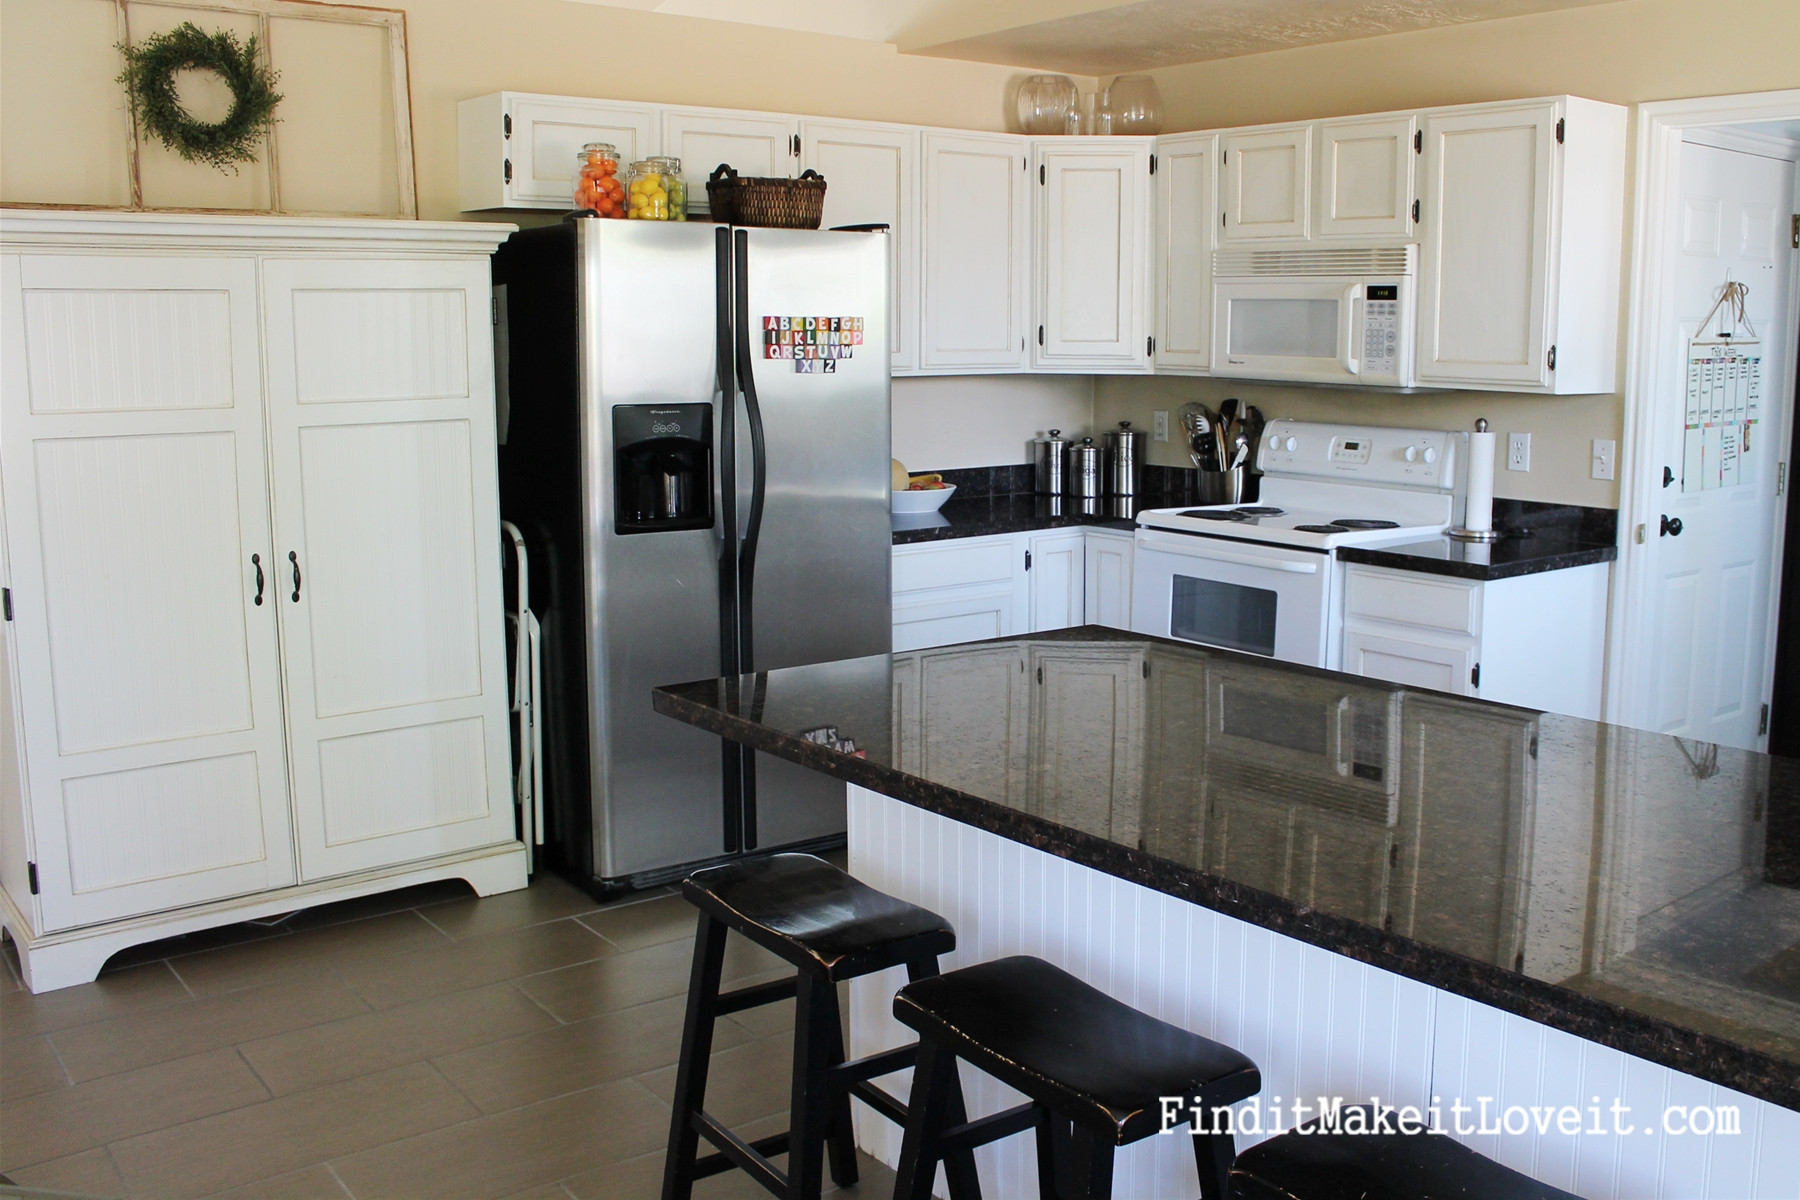 Best ideas about Painting Kitchen Cabinets DIY . Save or Pin Painted Kitchen Hutch Find it Make it Love it Now.